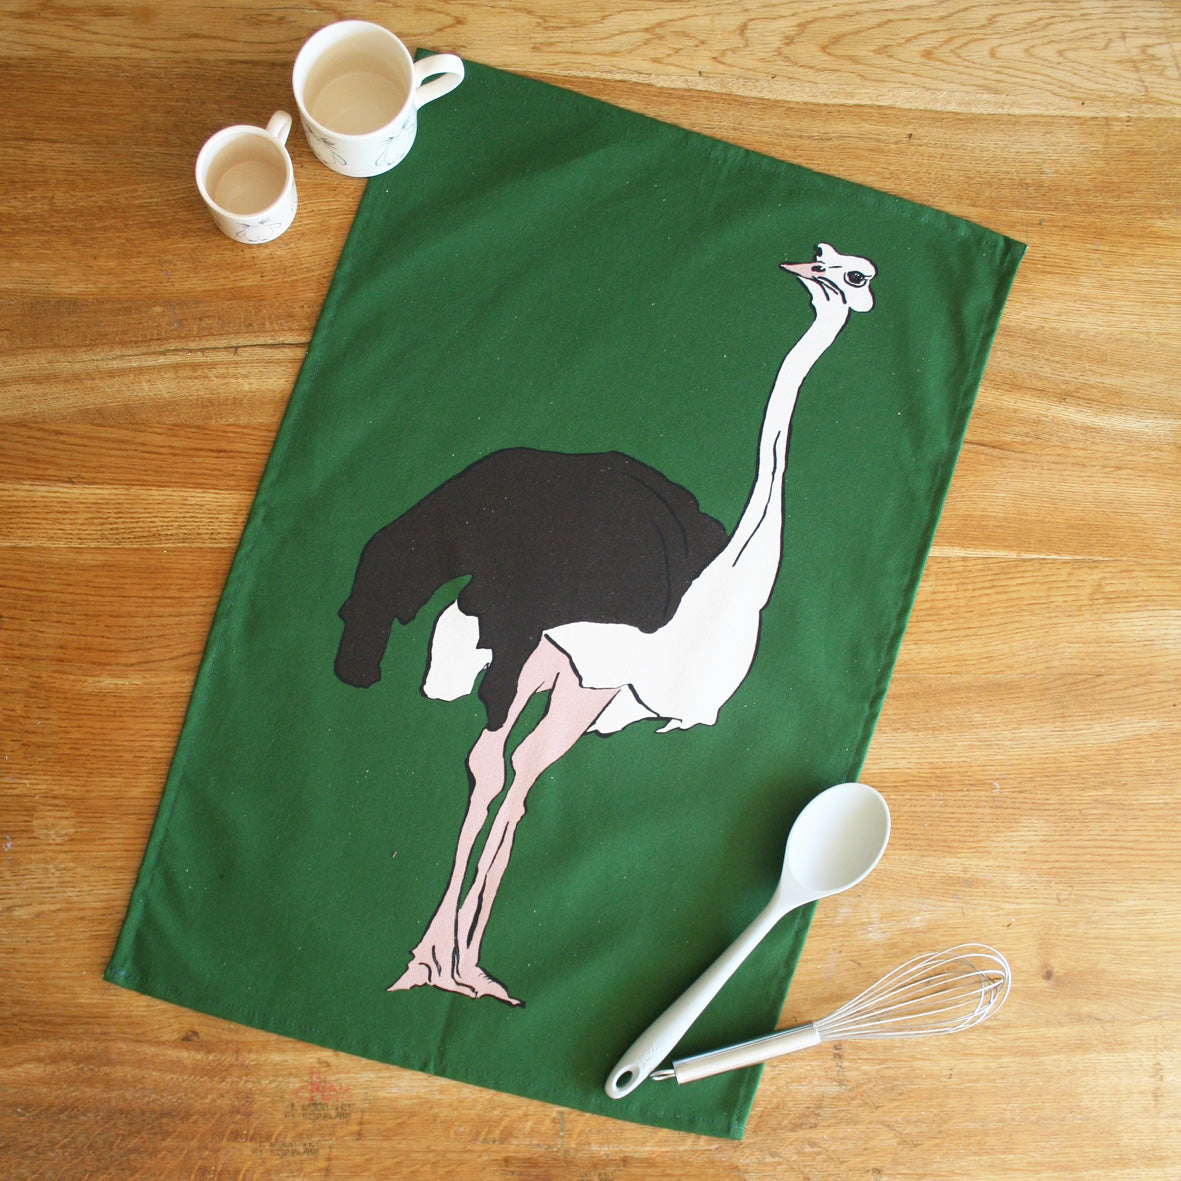 green tea towel with ostrich design